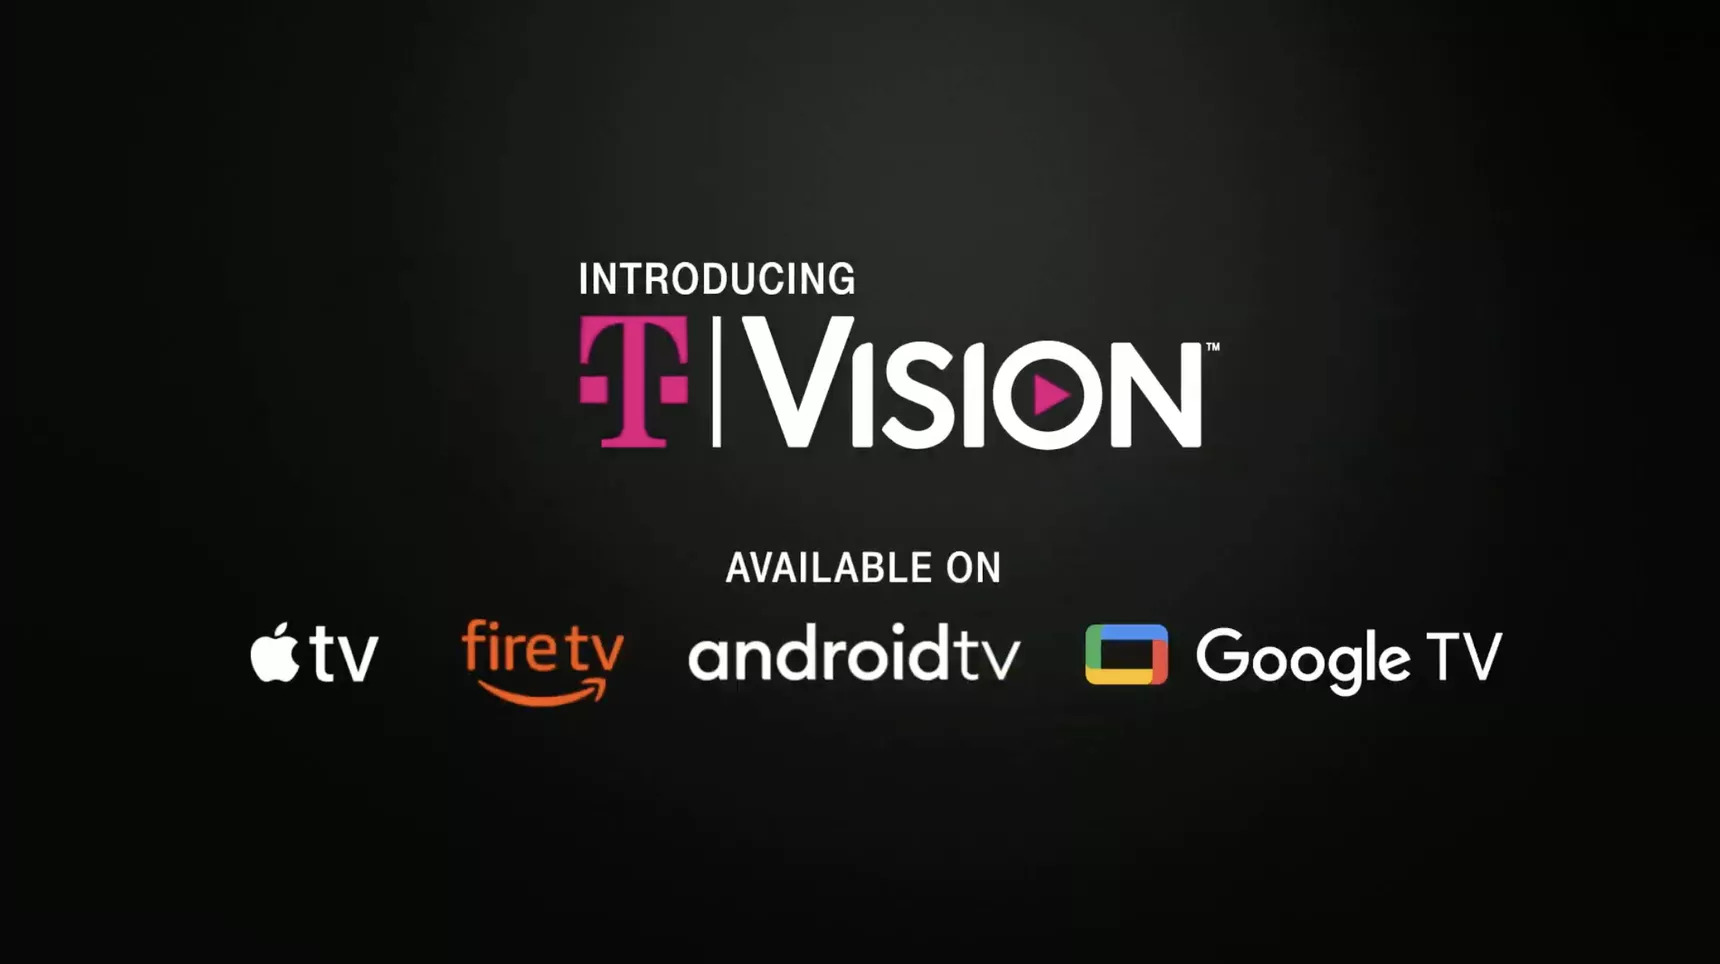 Mobile launches new TVision streaming bundles, pricing starts at $10 per month